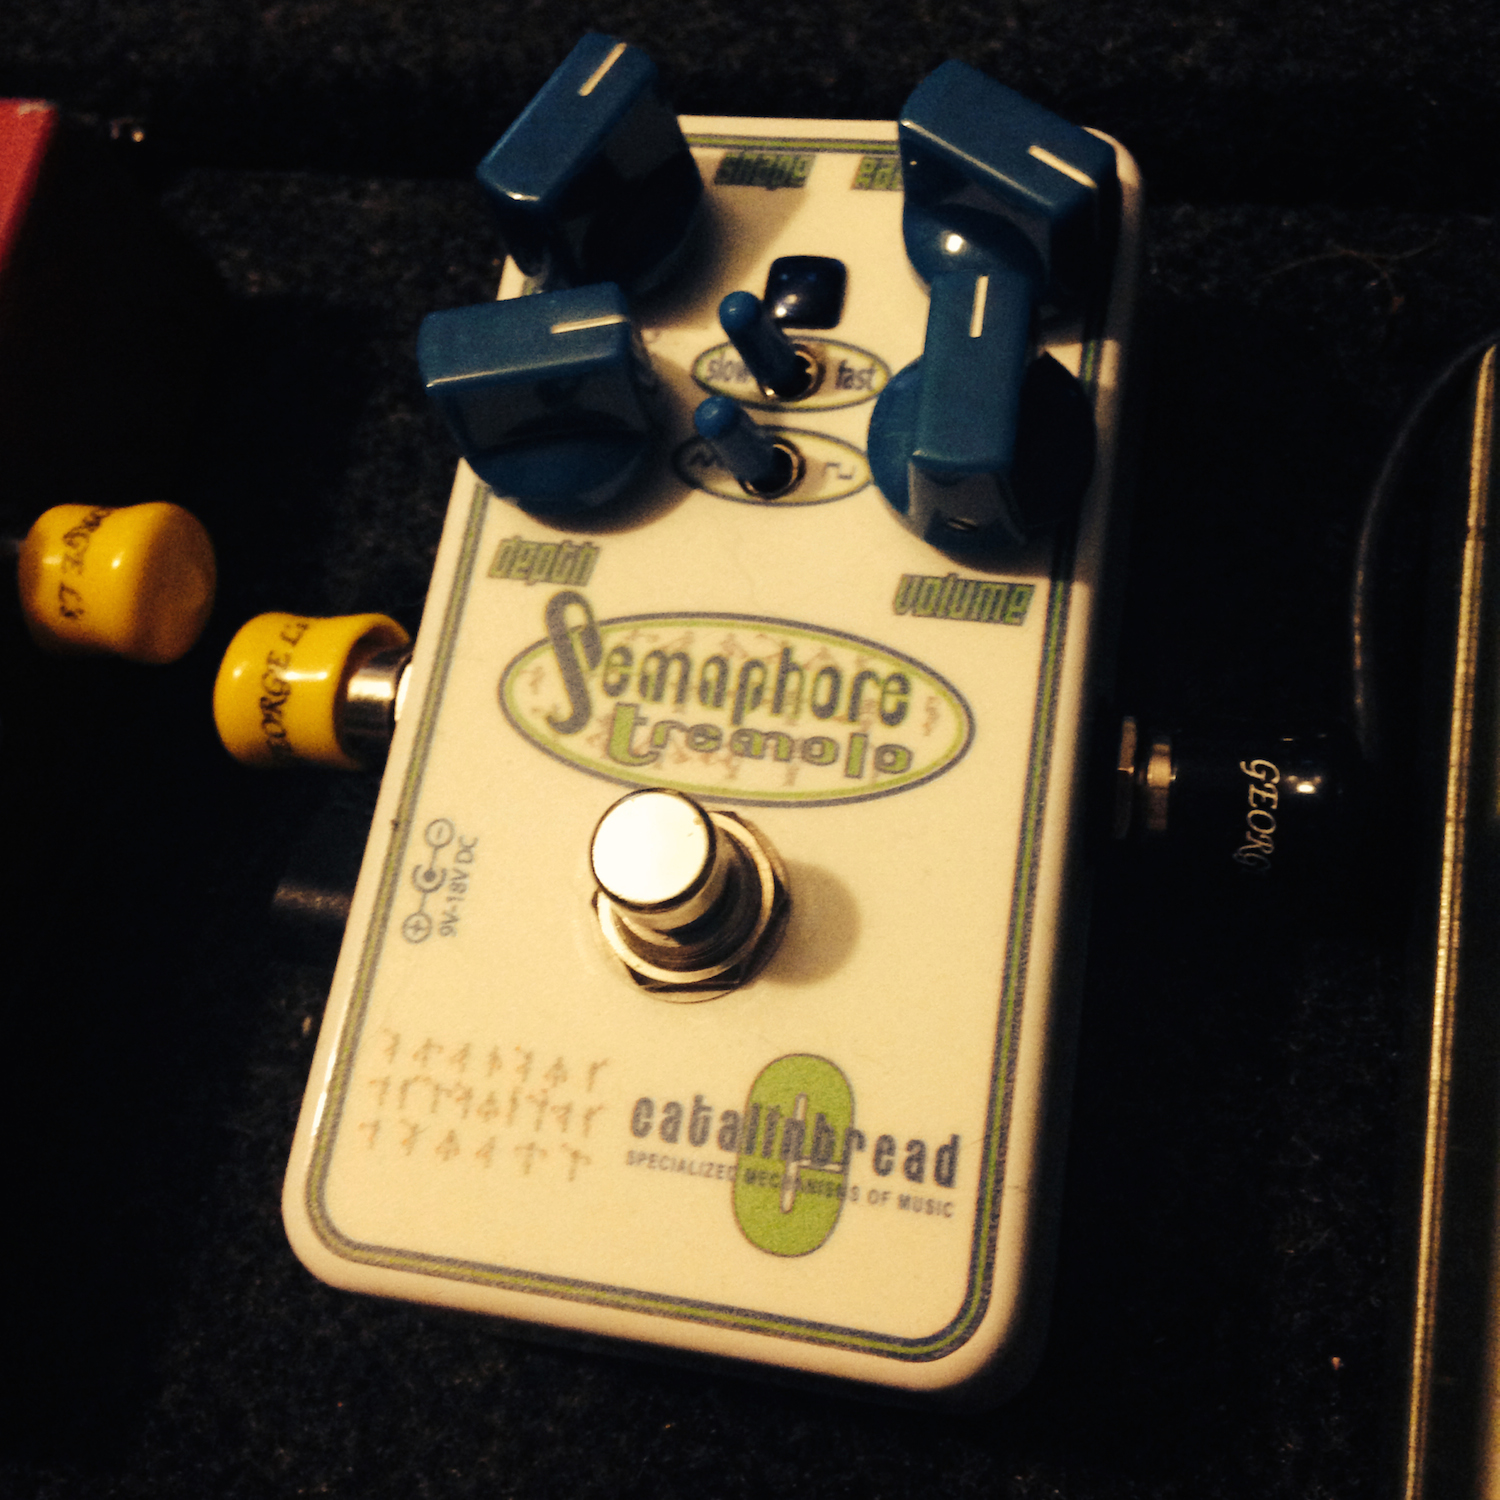 Catalinbread Semaphore Tremolo